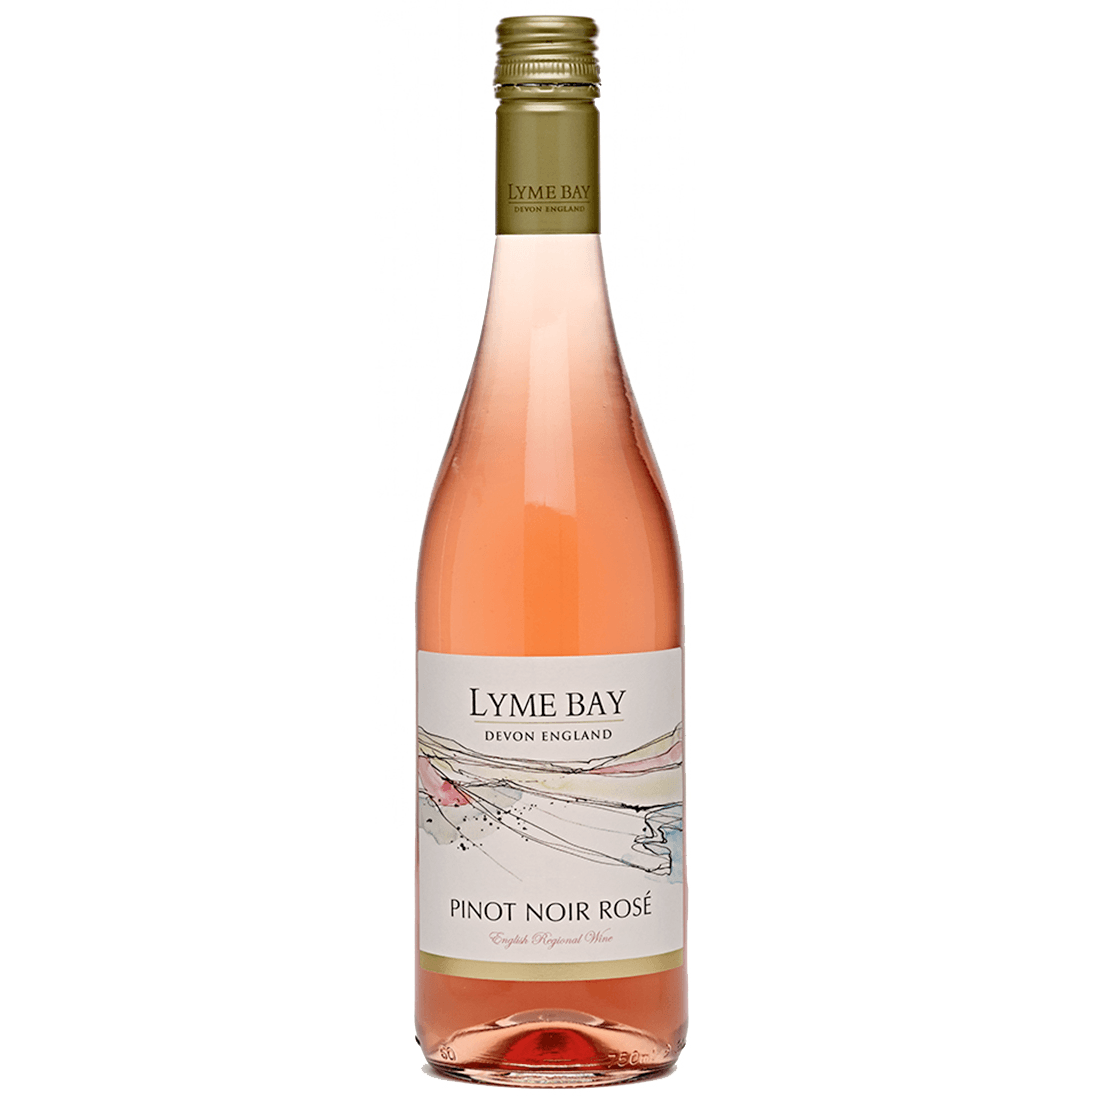 Lyme Bay Pinot Noir Rosé 2017 bottle shot